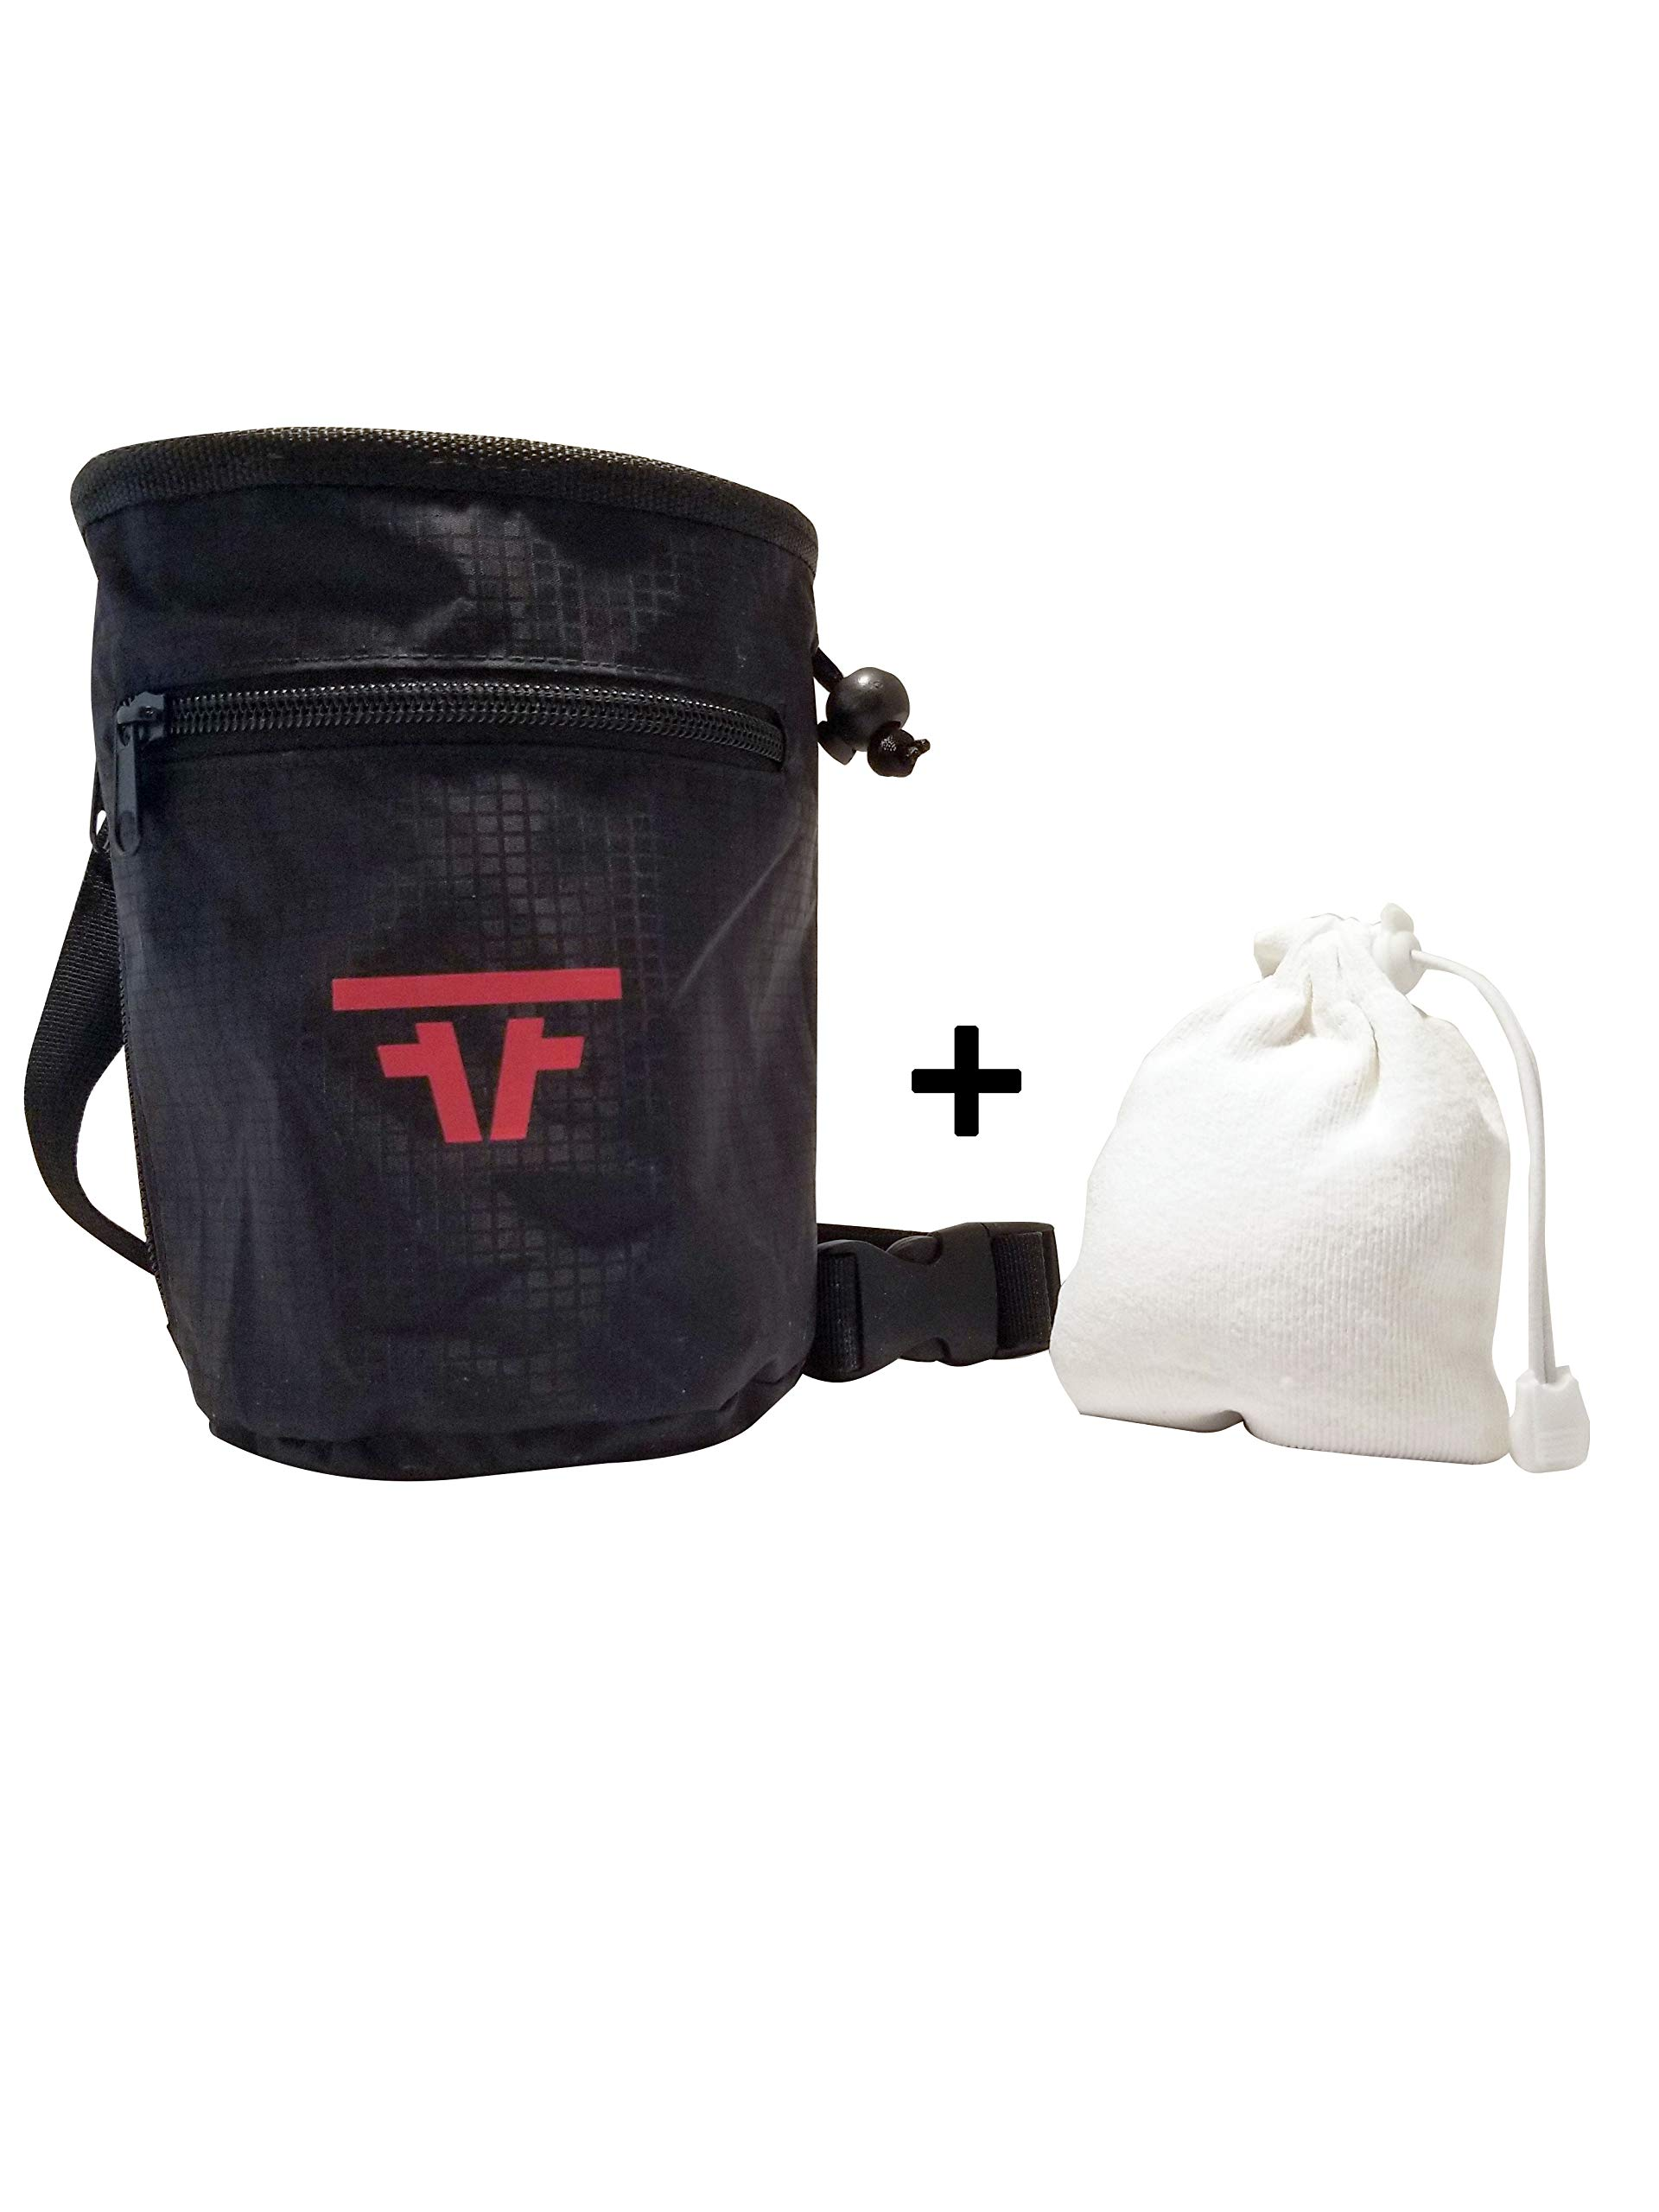 Free Face Gear Chalk Bag for Rock Climbing with Refillable Chalk Ball, Quick Clip-On Adjustable Waist Strap, Large 2-Zipper Design for Bouldering, Gymnastics, Cross-Fit, and Lifting